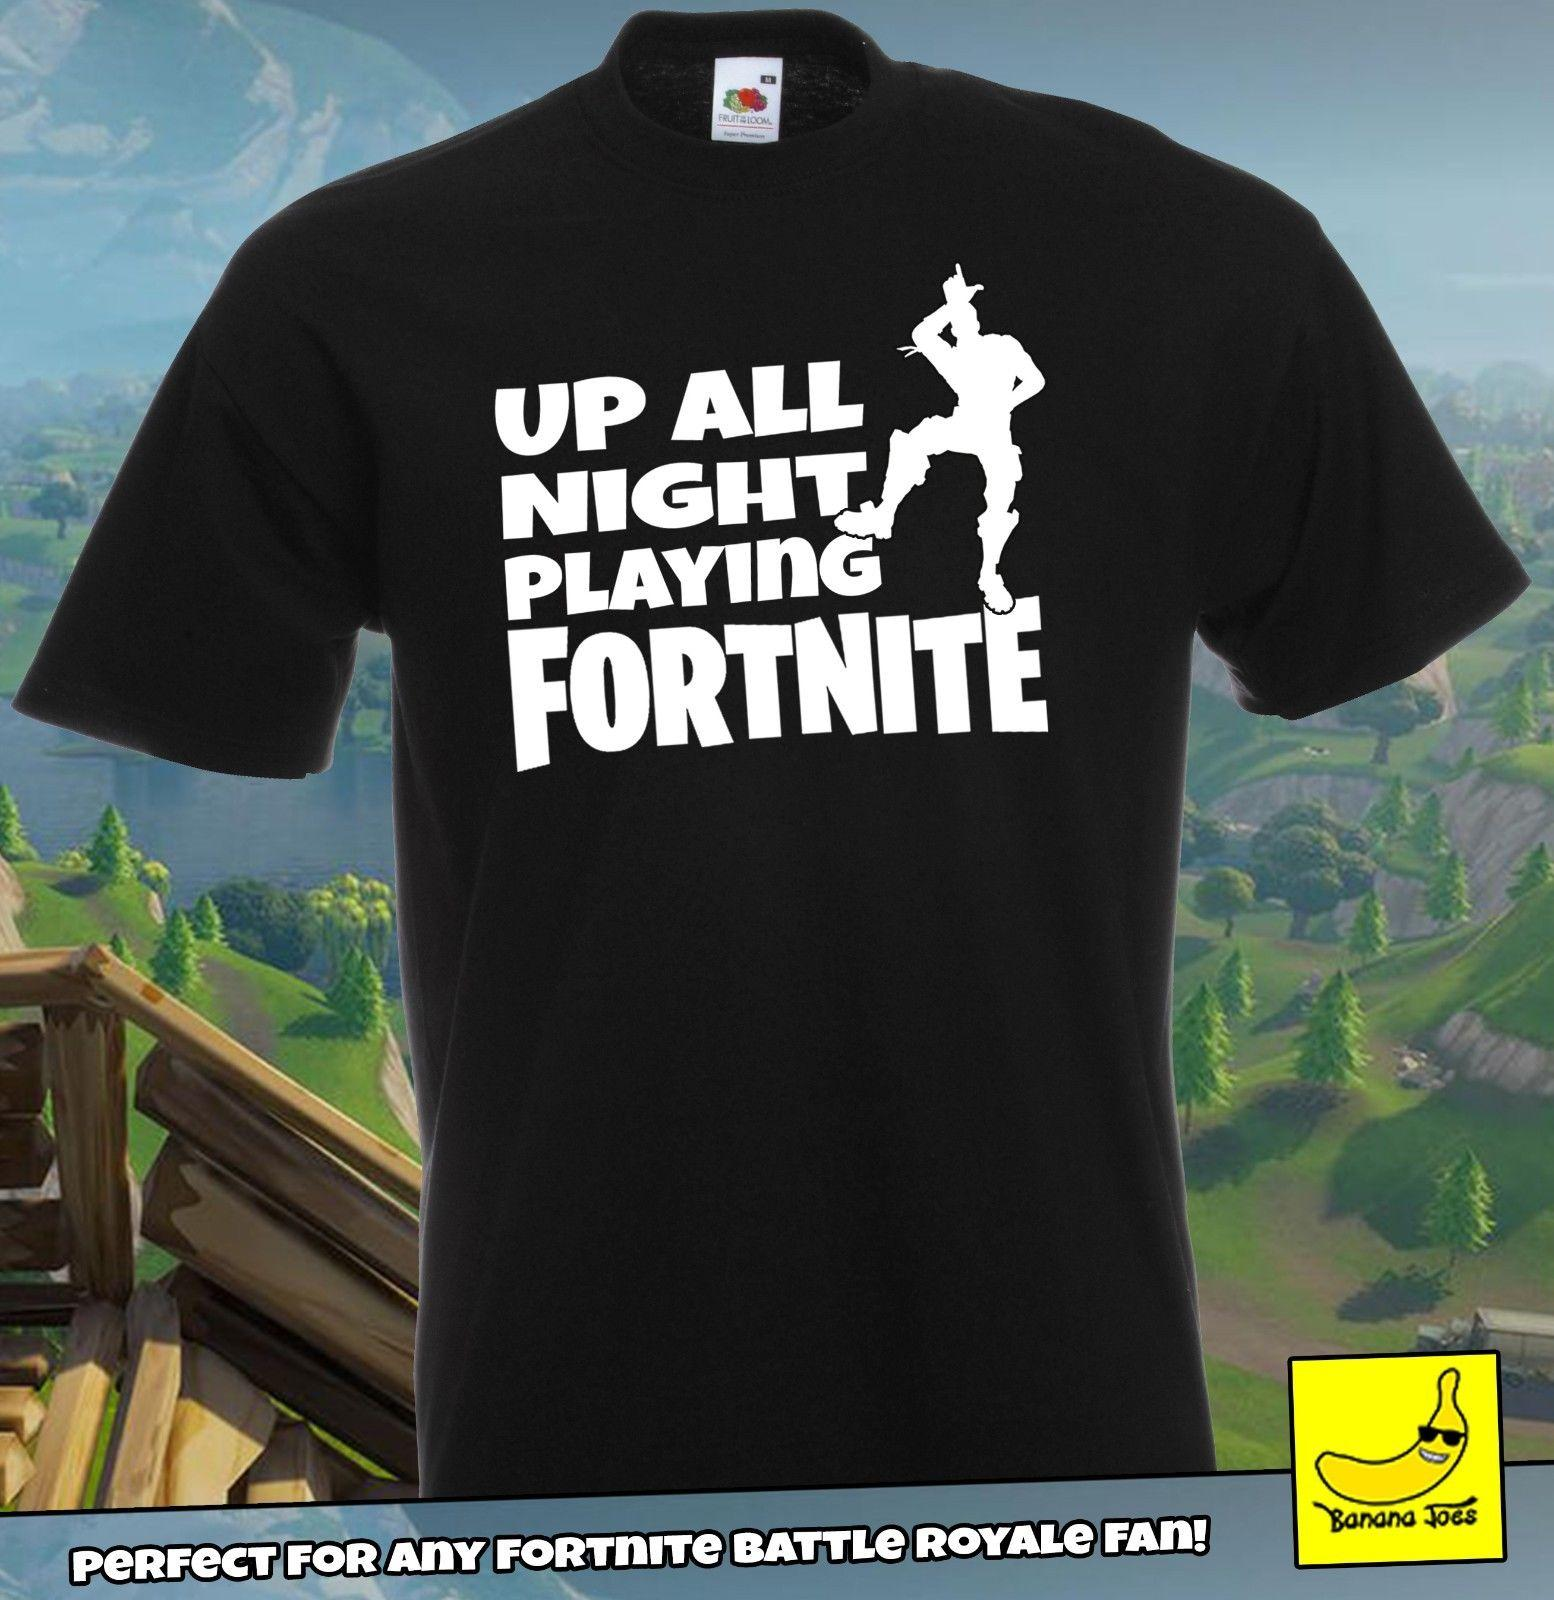 Kids' Clothes, Shoes & Accs. Fortnite Official Logo Boys Black T-shirt Battle Royale Top Gamers Tee Moderate Price Boys' Clothing (2-16 Years)